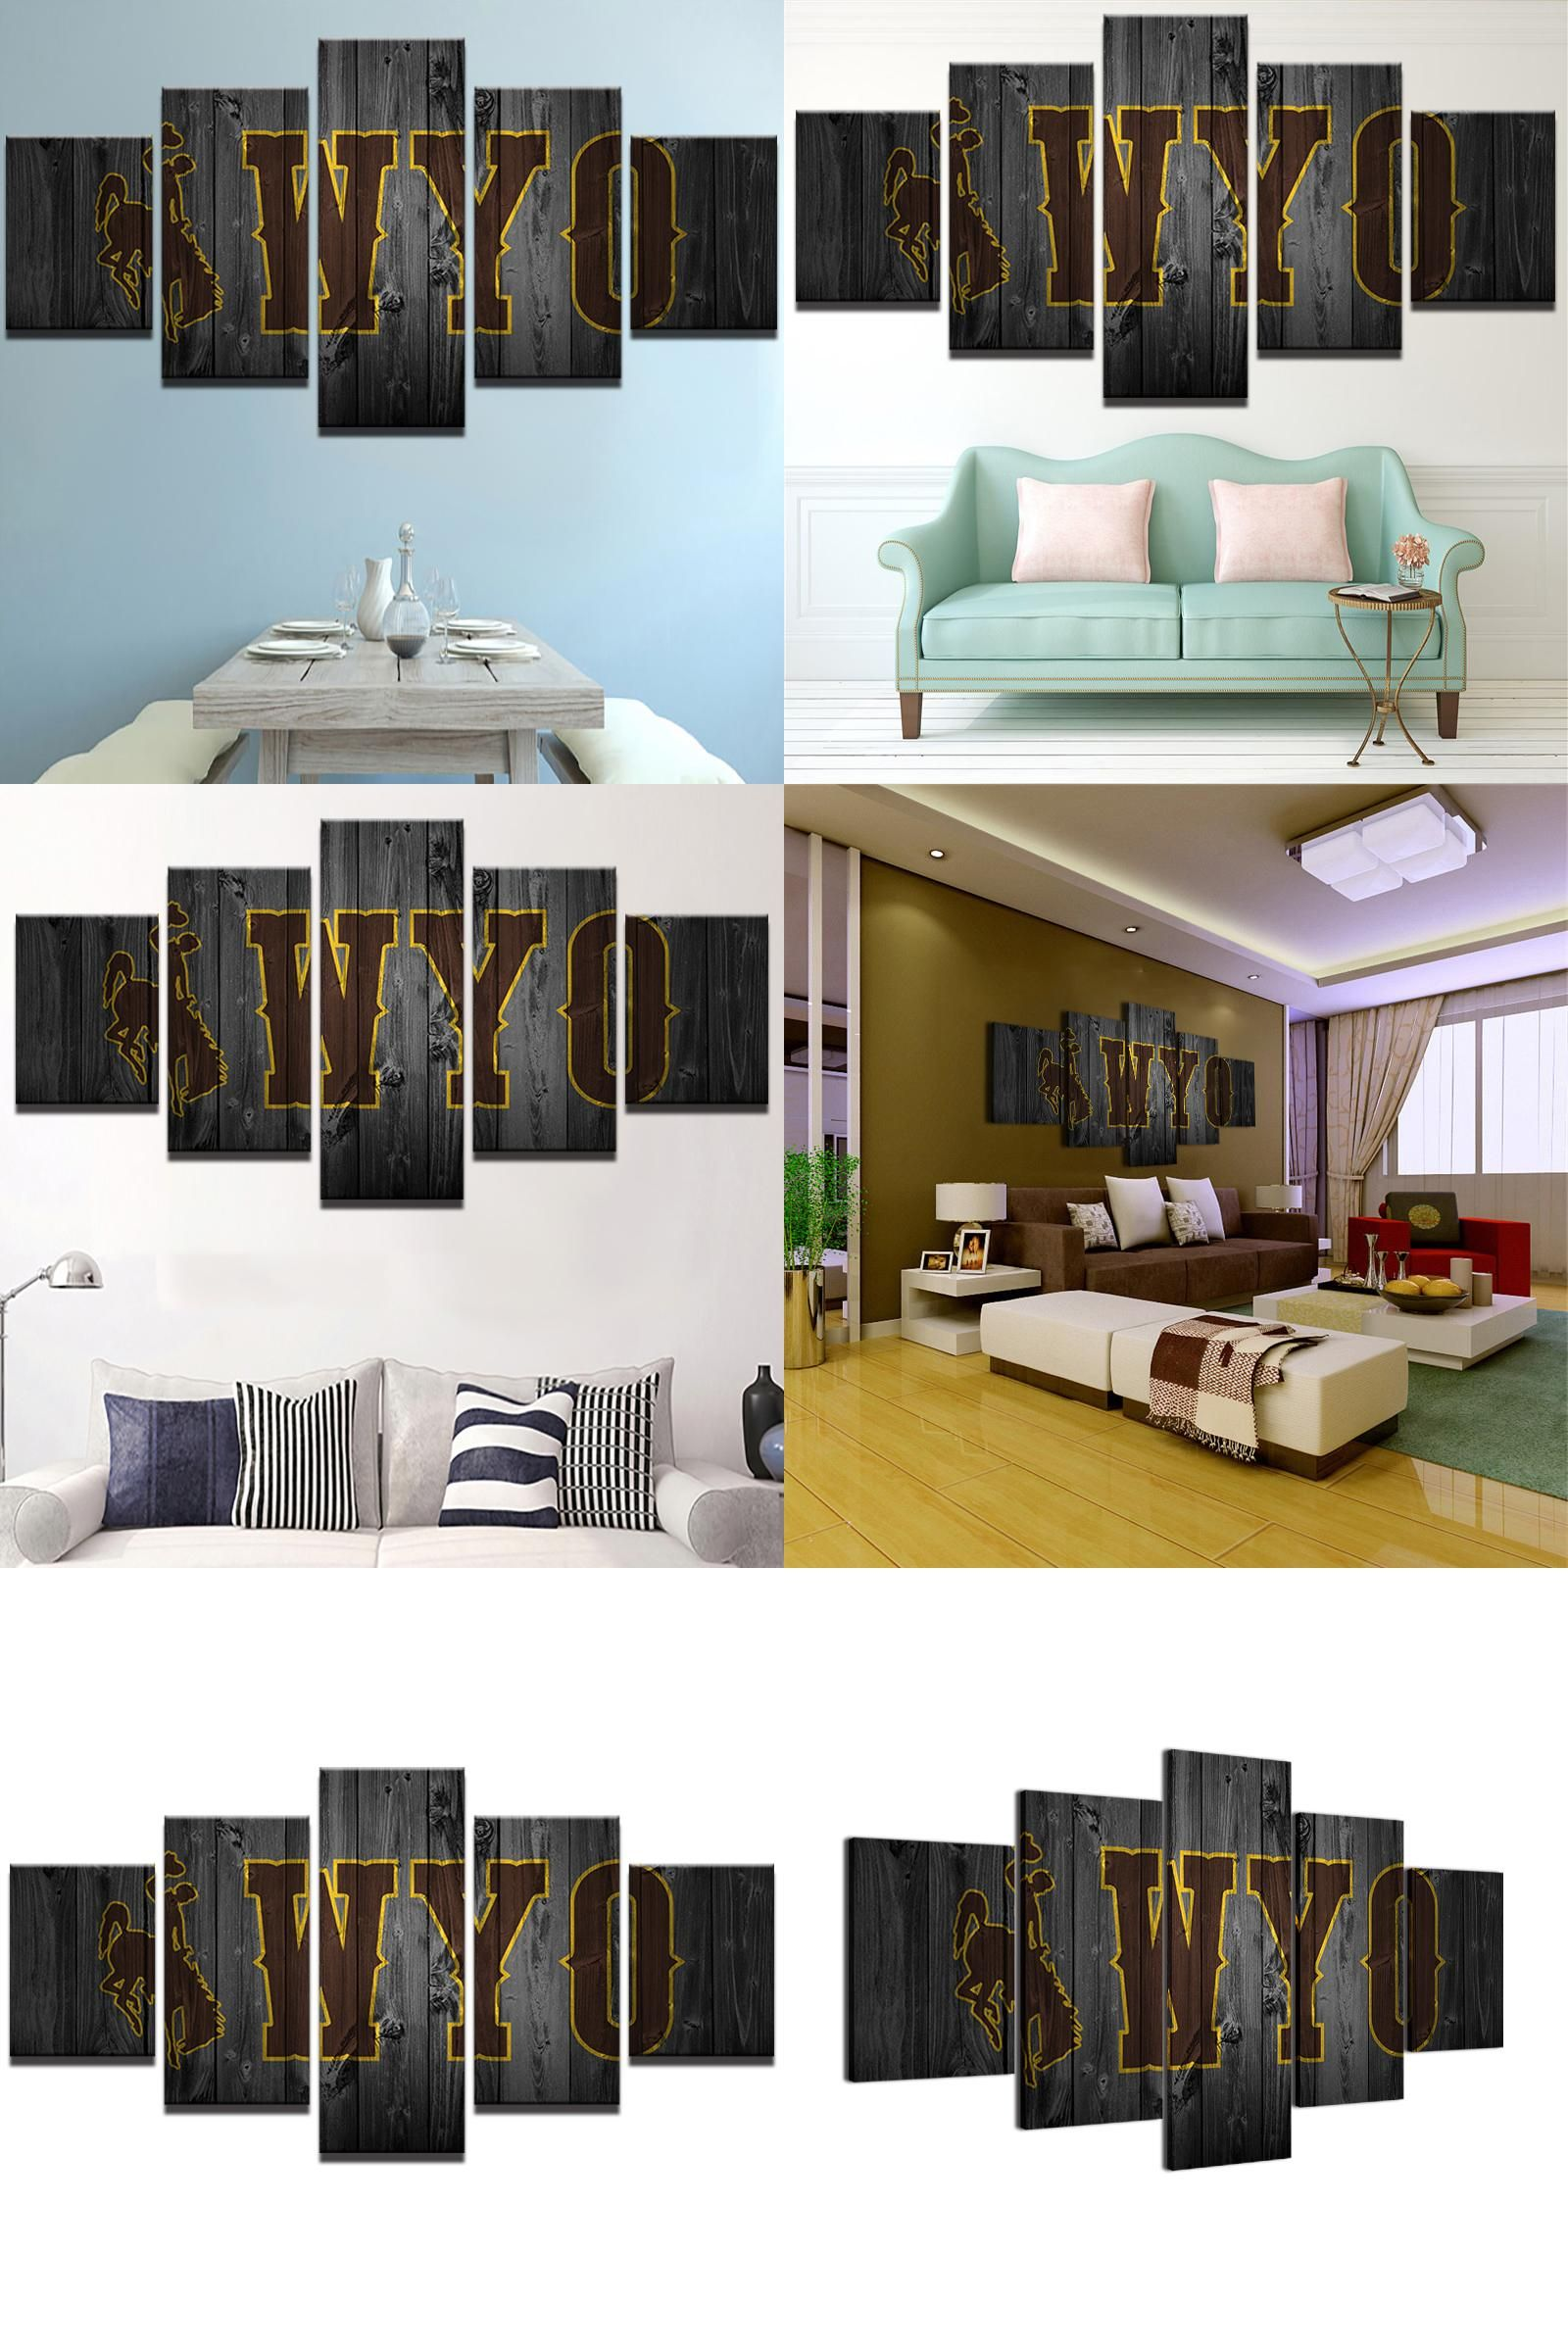 Visit to buy pengda modern home wall art decor frame painting